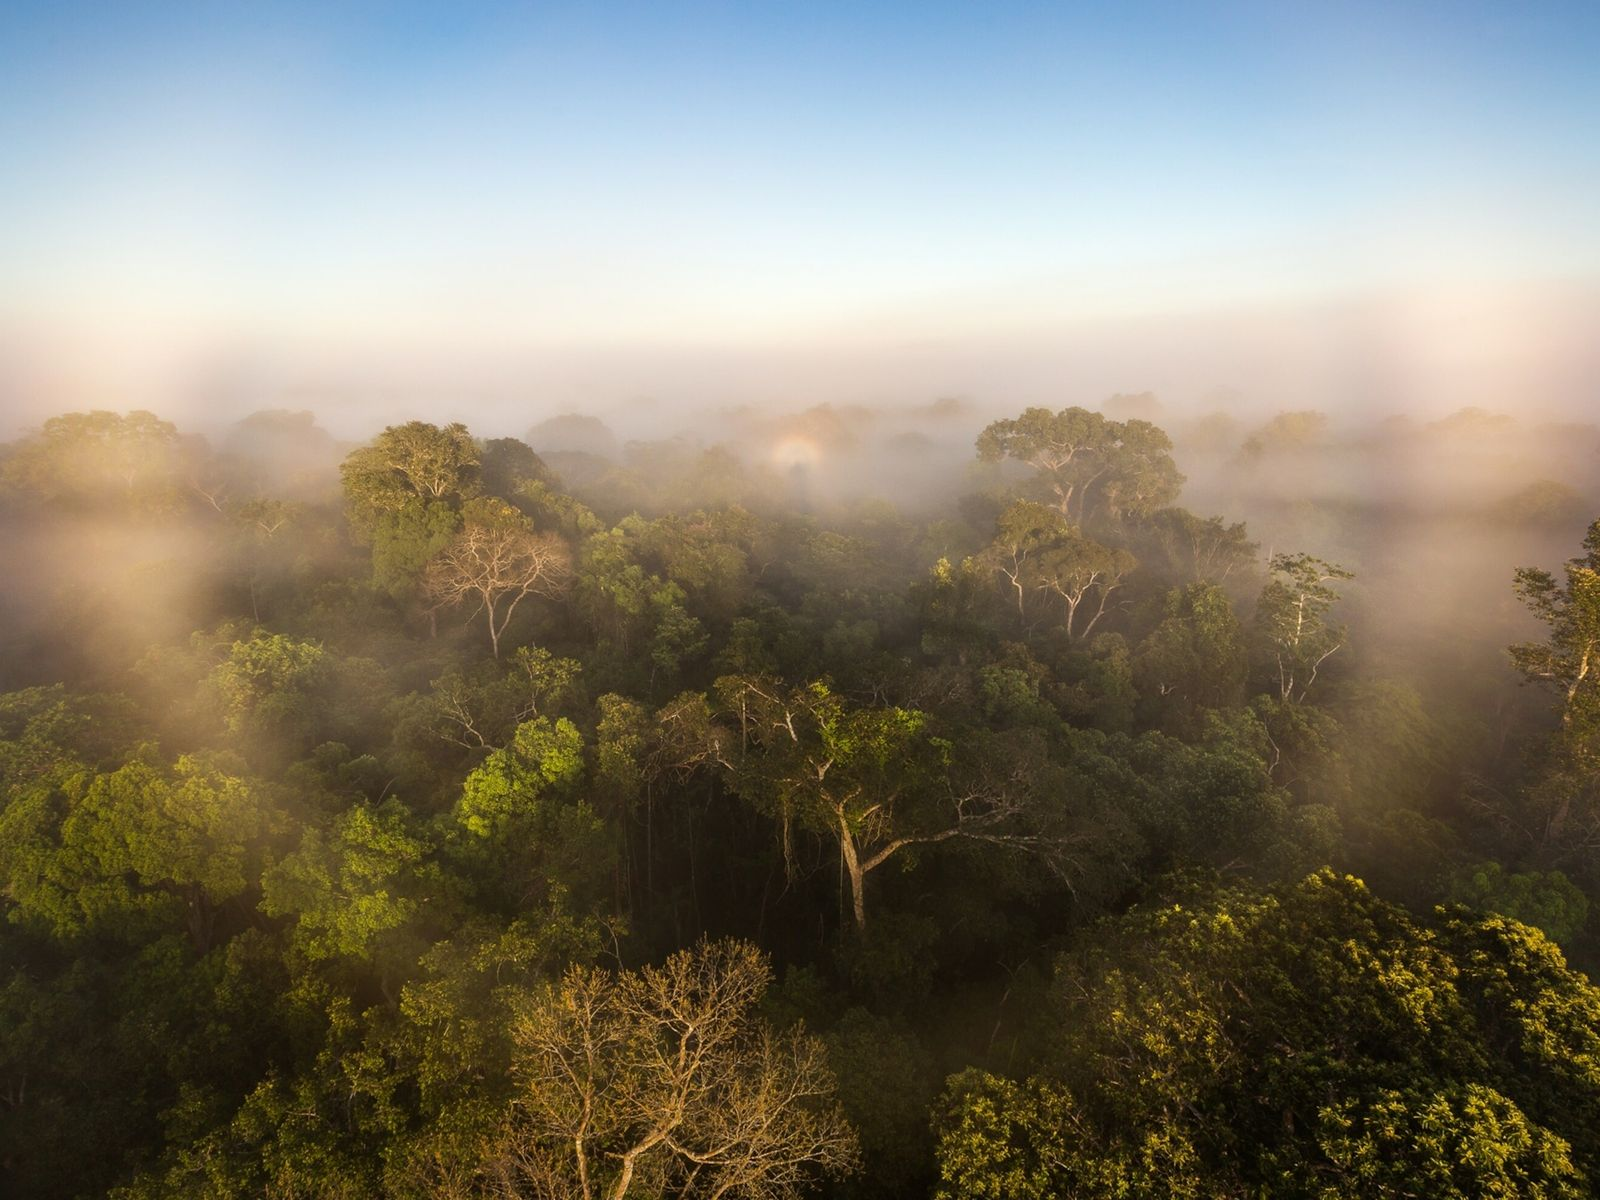 Sunrise creating a halo in the early morning mist over the canopy of the rainforest. Alta ...